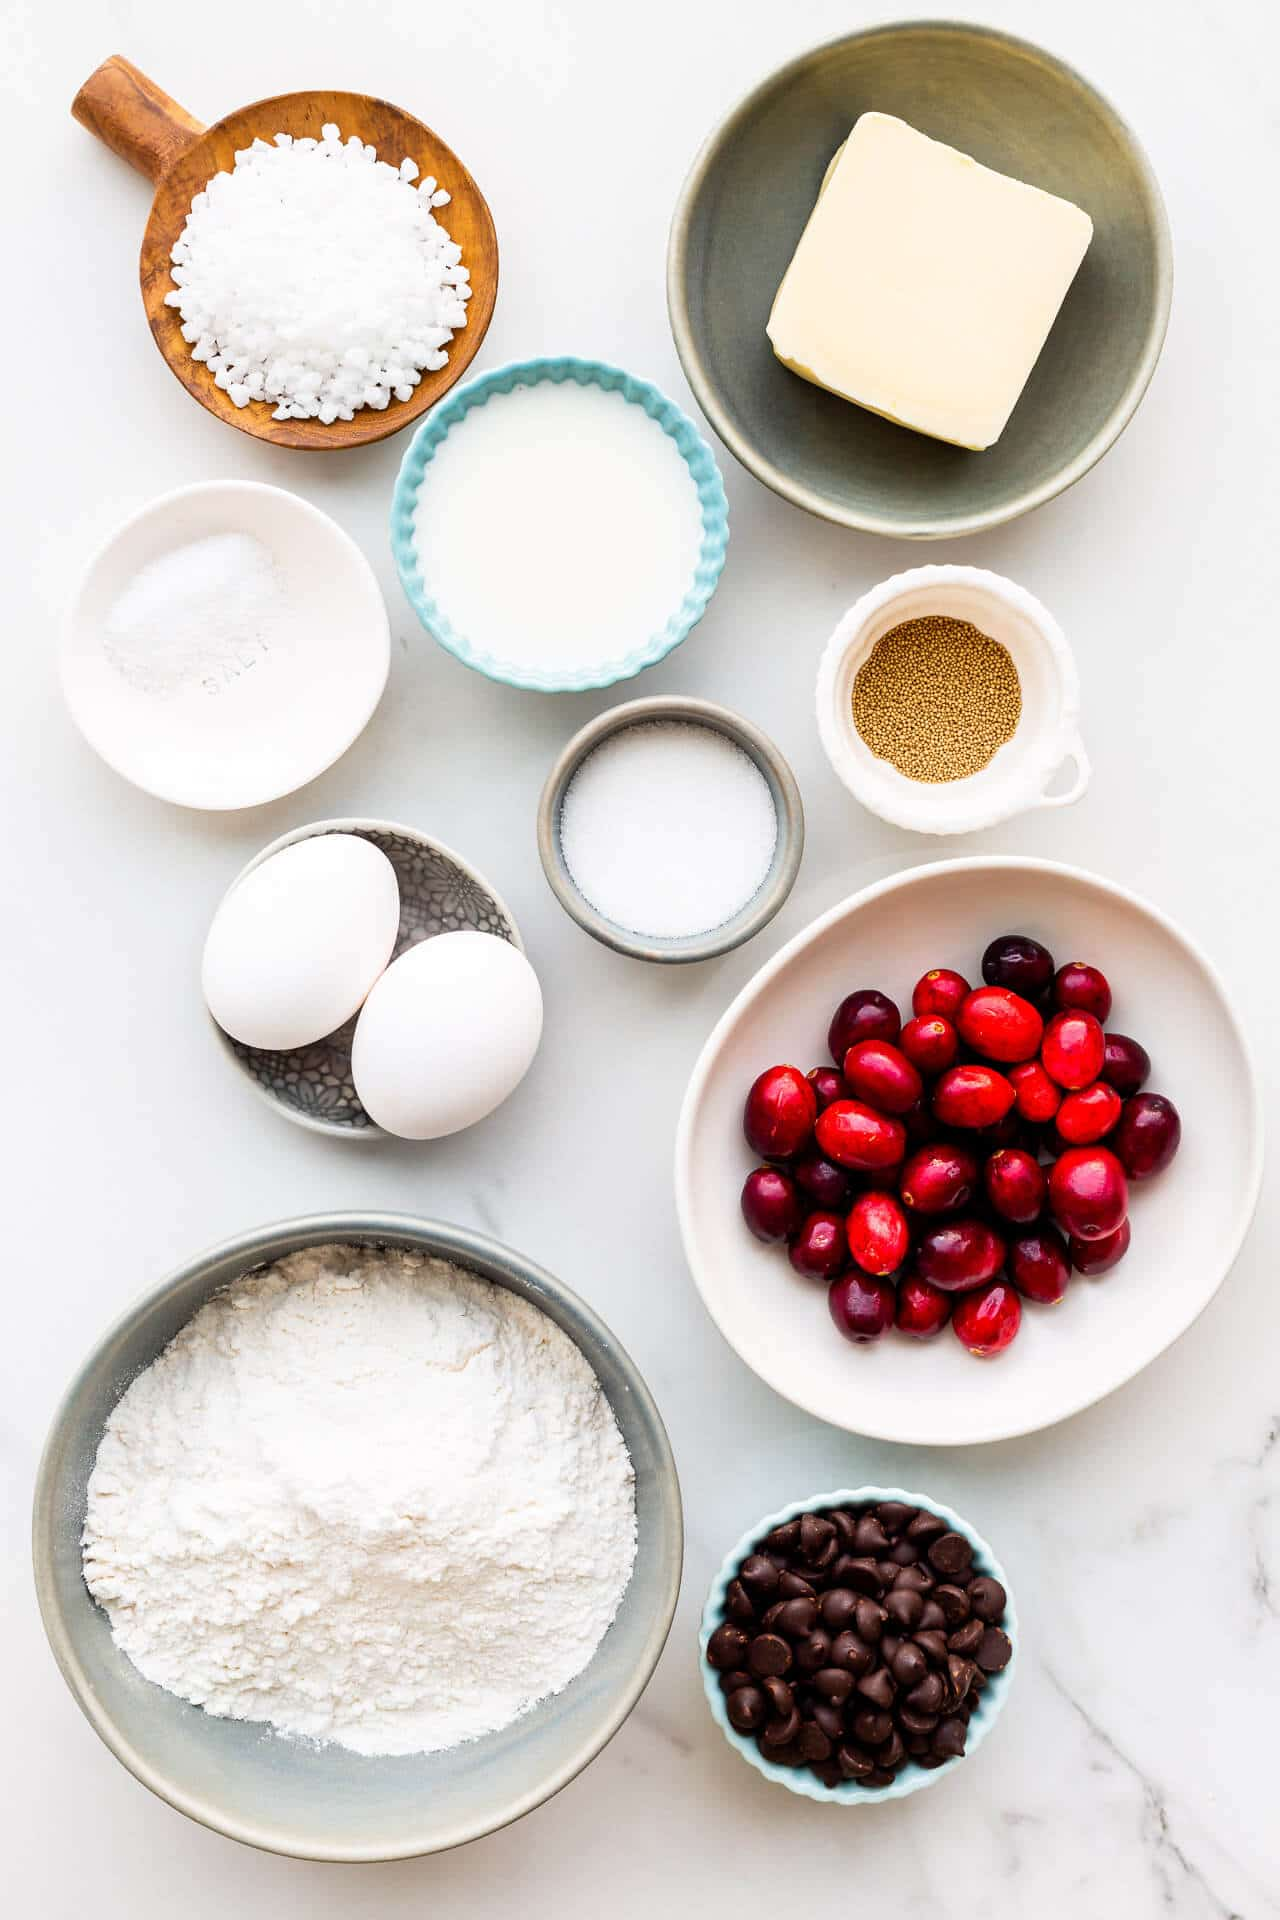 Ingredients to make chocolate cranberry bread buns measured out and ready to be used.